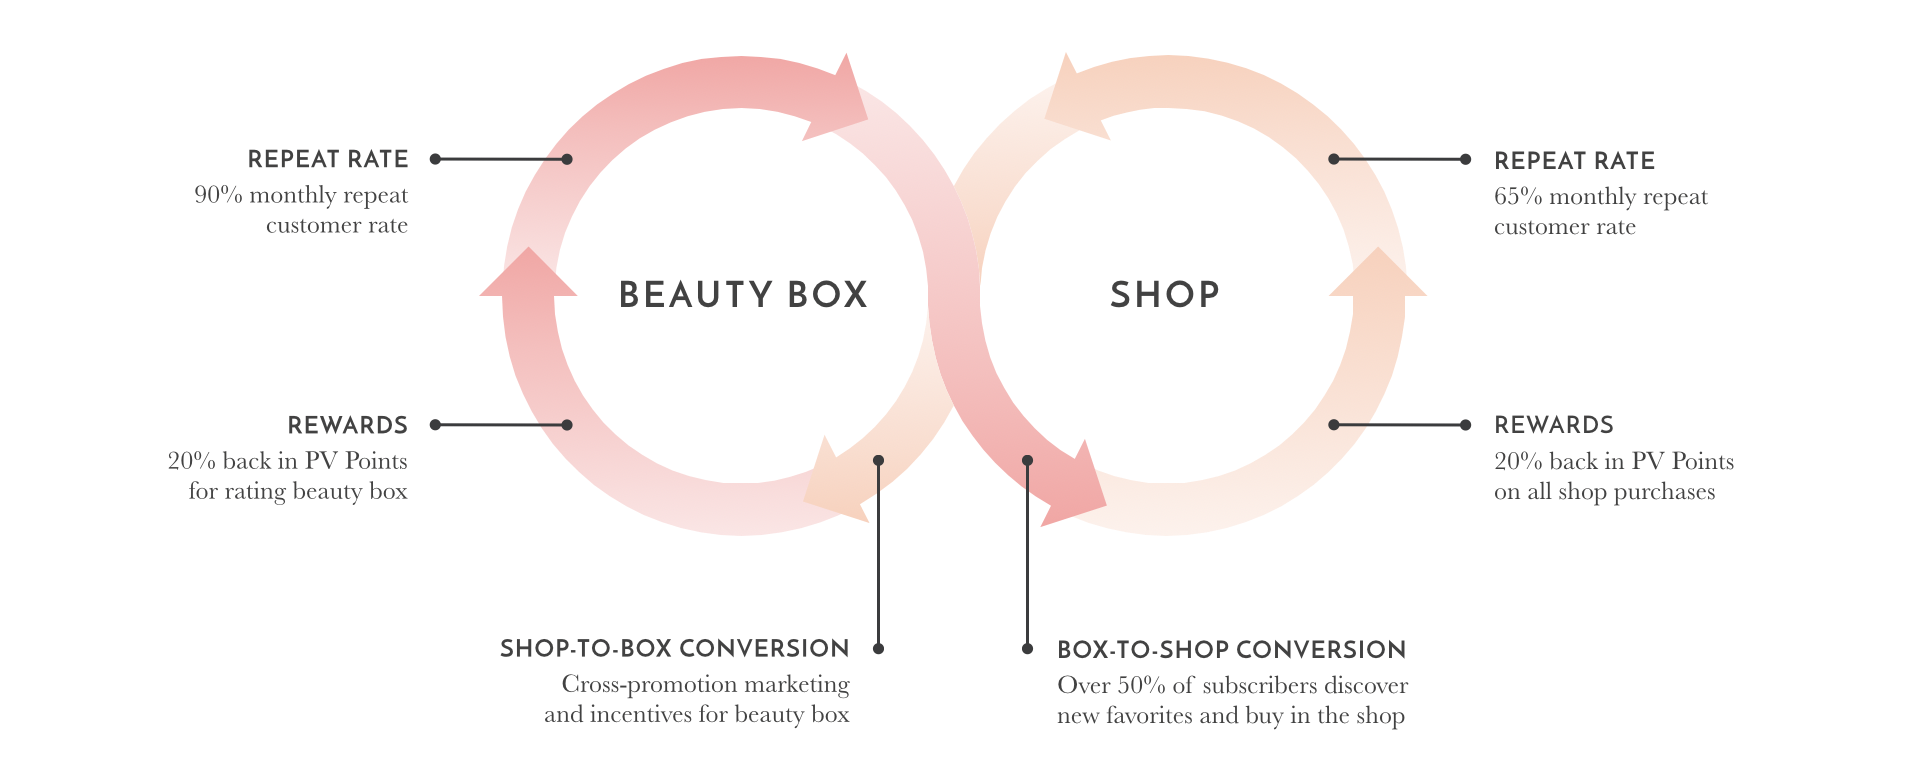 e46e60f624e5 Product Offering  We re the only beauty box in our category with a full  lifestyle retail component  each one drives conversion to the other